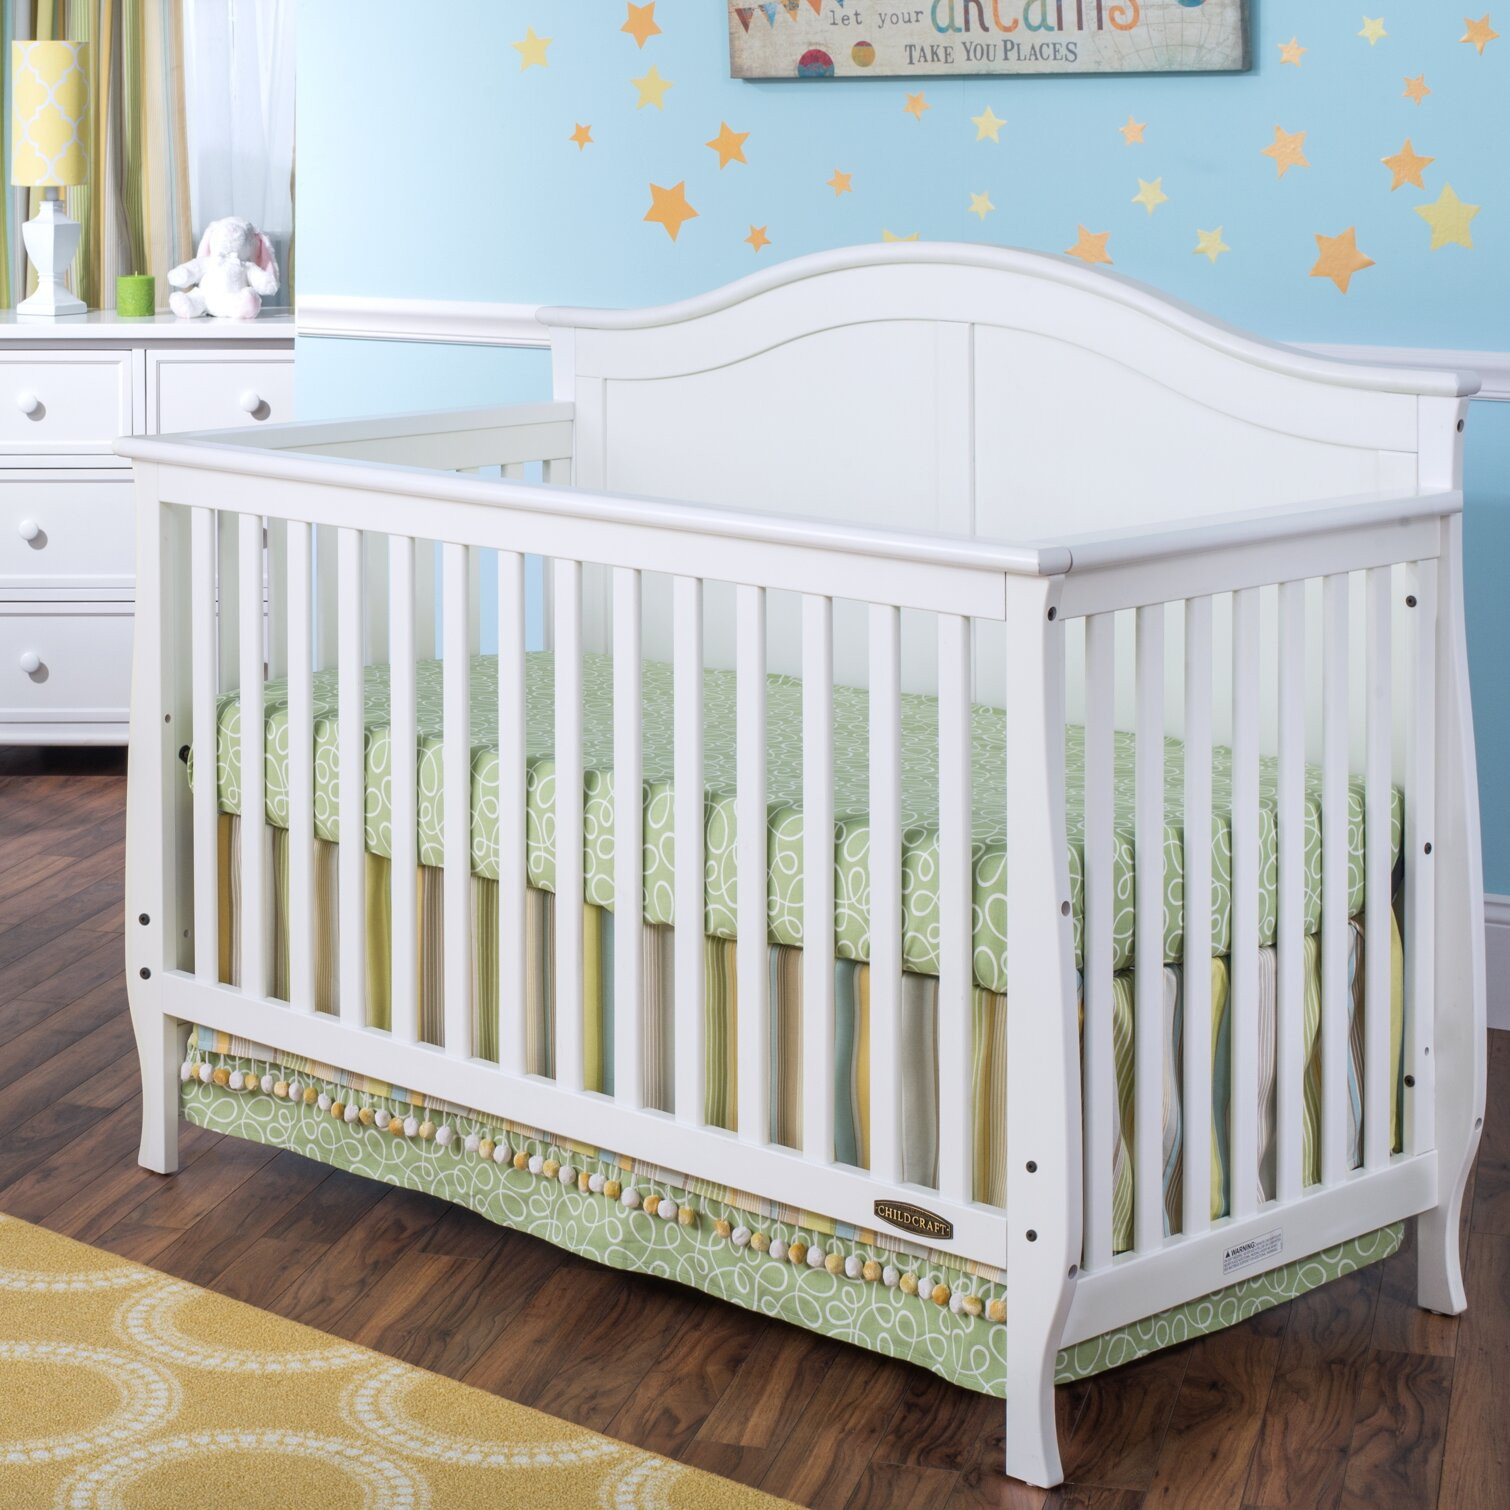 Child Craft 4-in-1 Convertible Crib